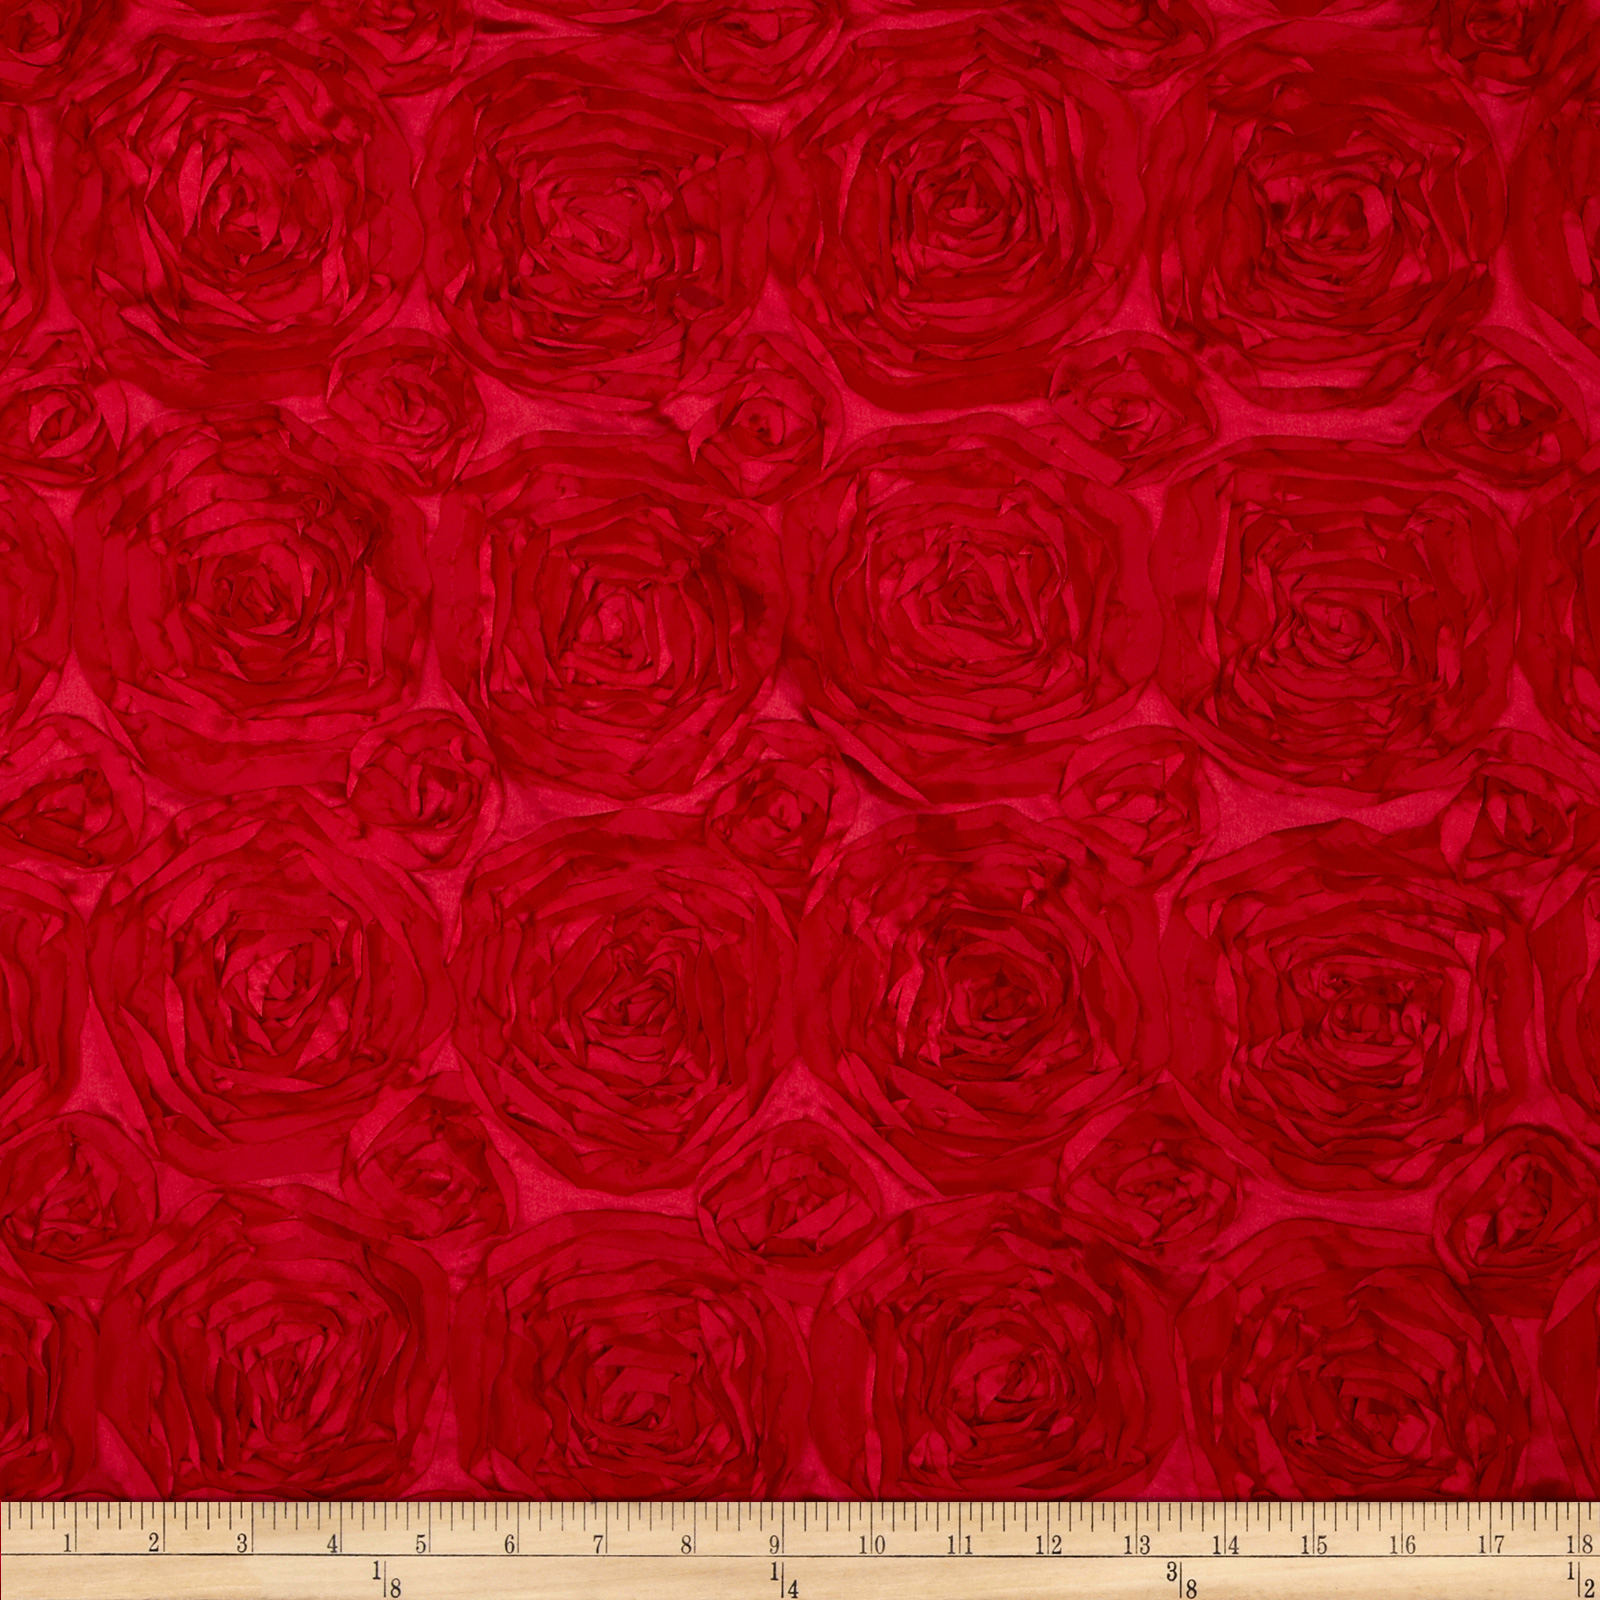 Rosette Satin Red Fabric by Richland in USA